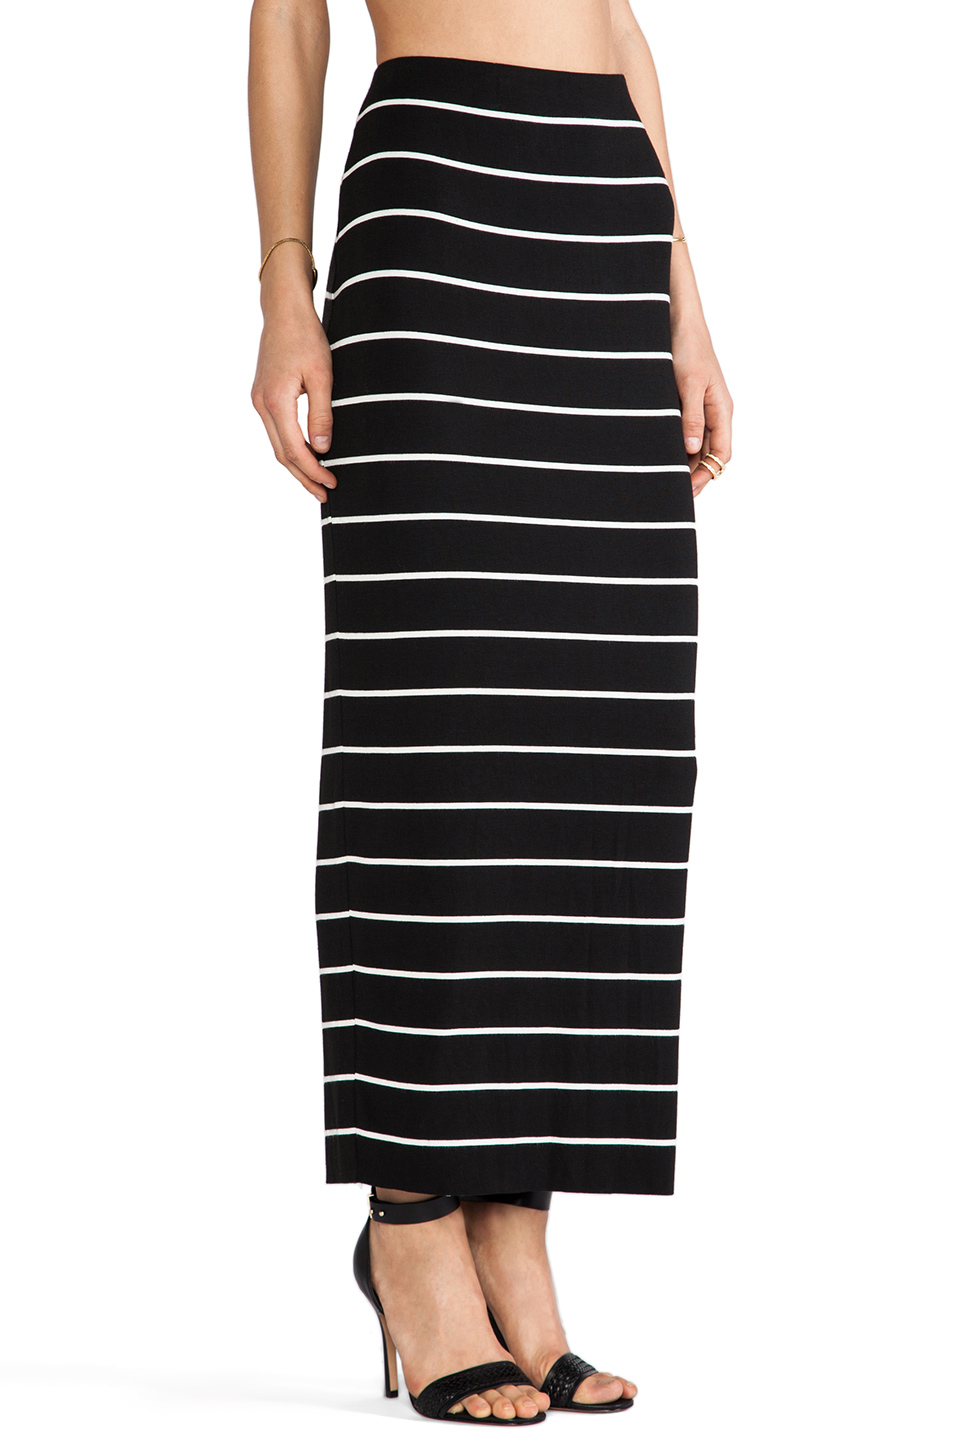 Bailey 44 Masakela Skirt in Big Stripe Black | REVOLVE